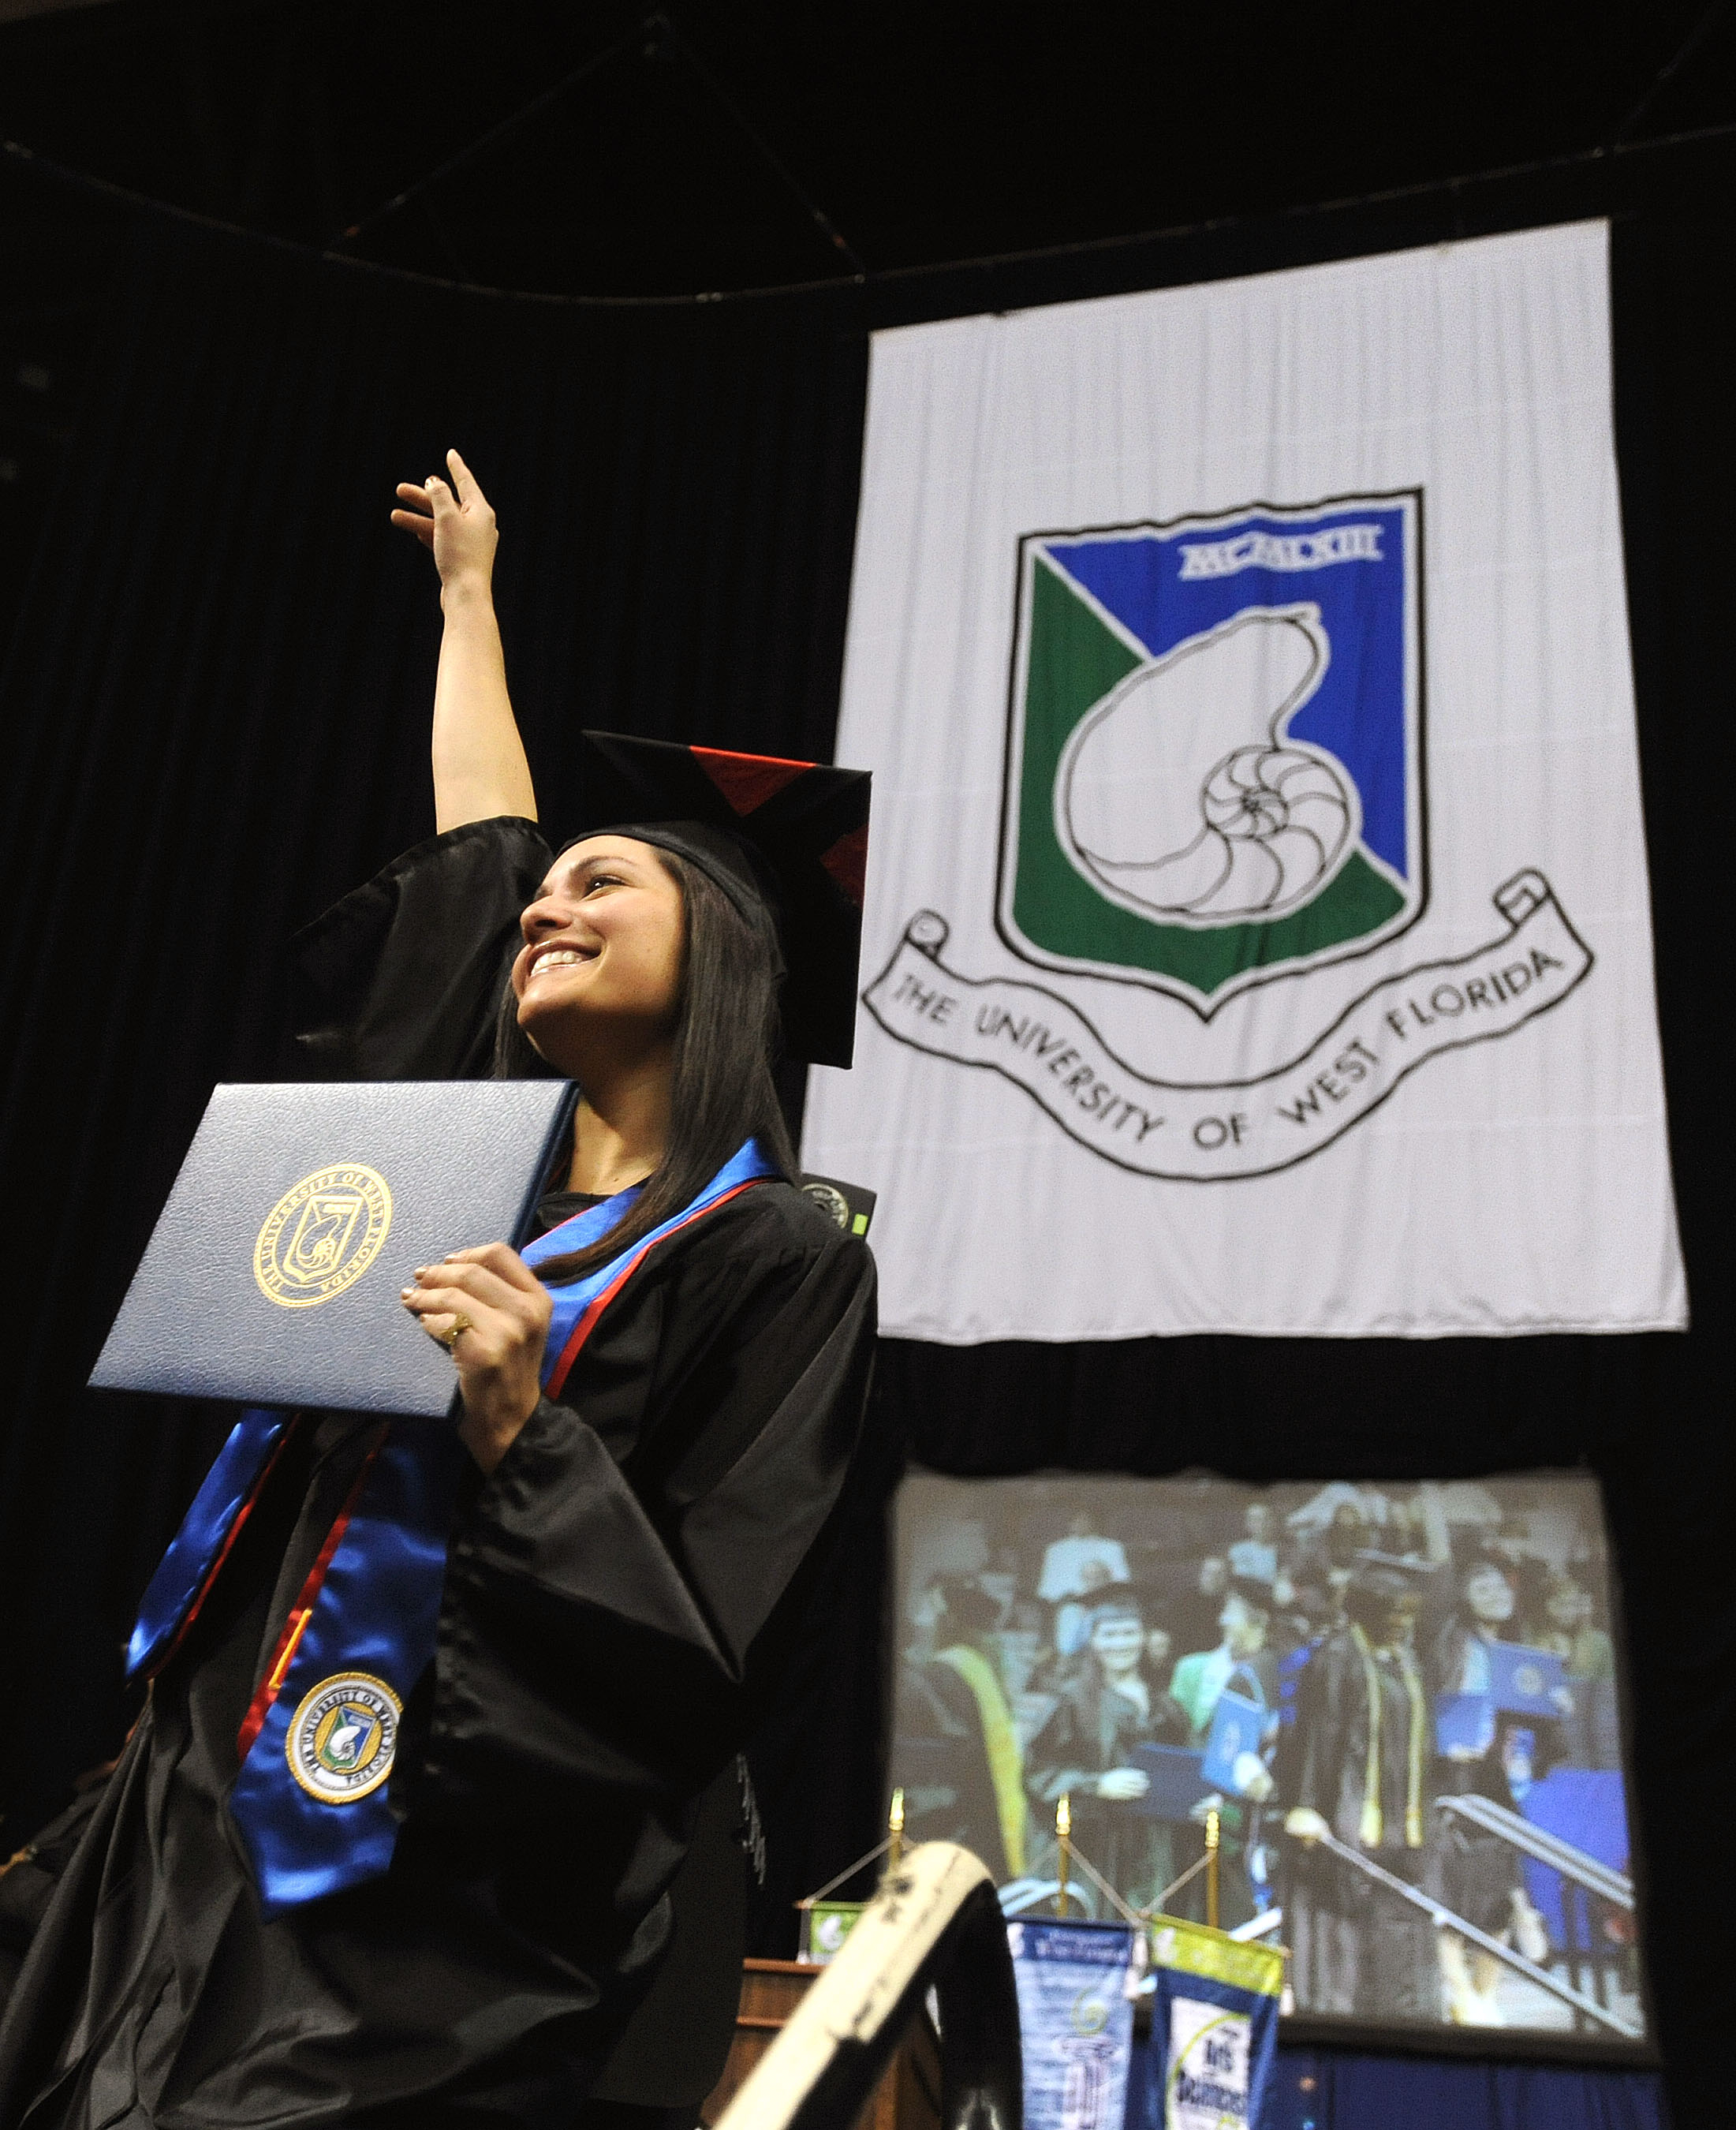 student proudly displaying her diploma cover during commencement ceremony